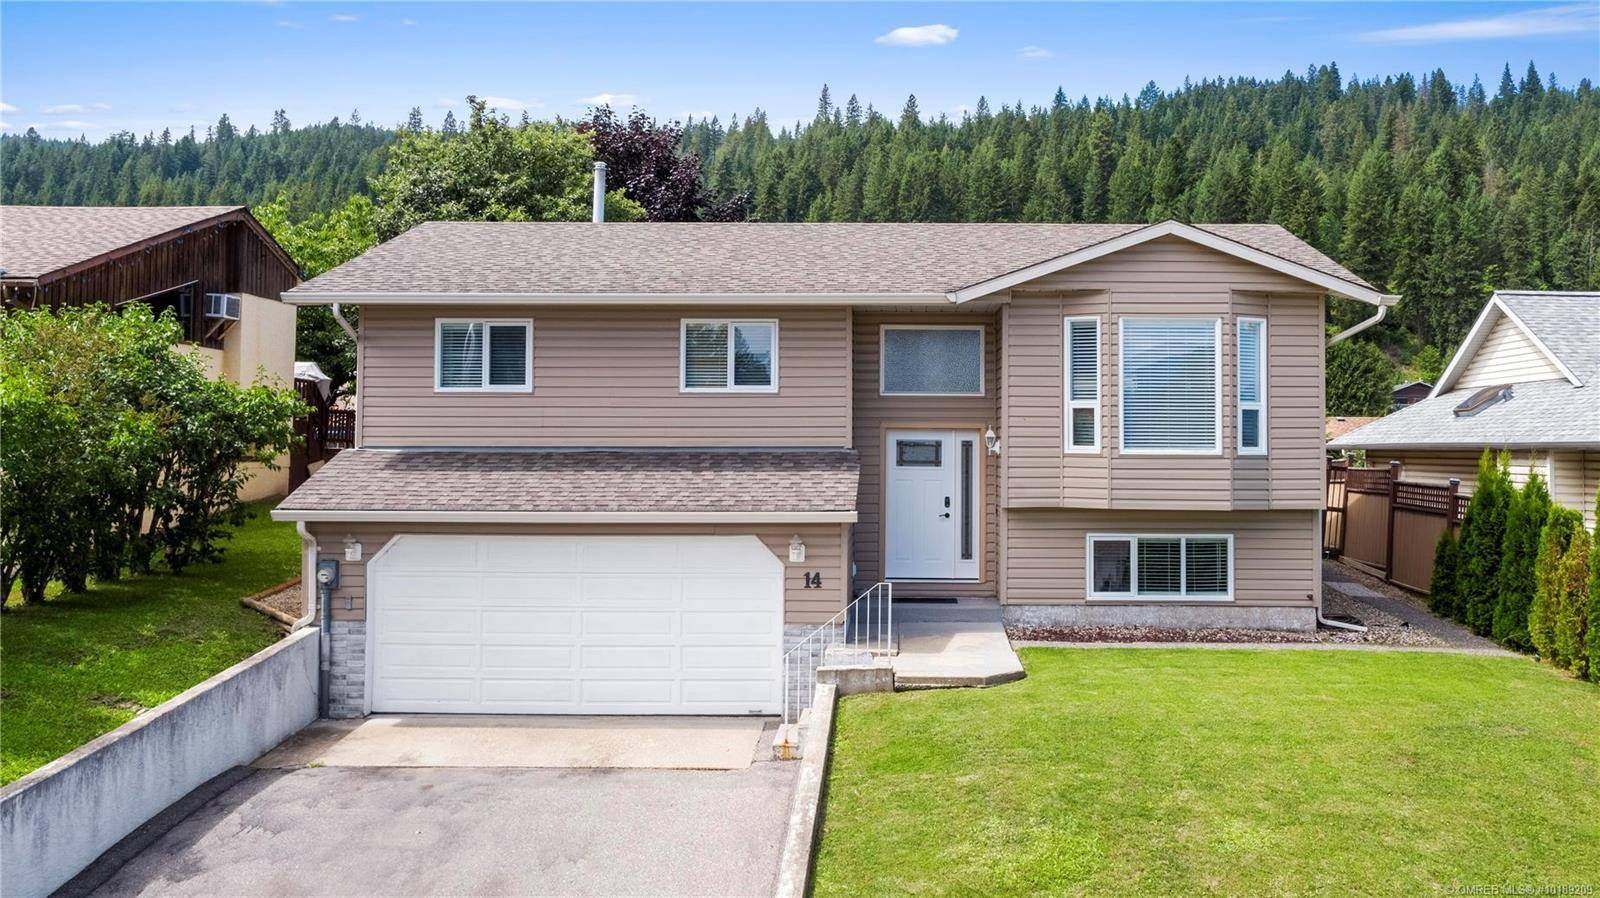 House for sale at 14 Preston Cres Enderby British Columbia - MLS: 10189209